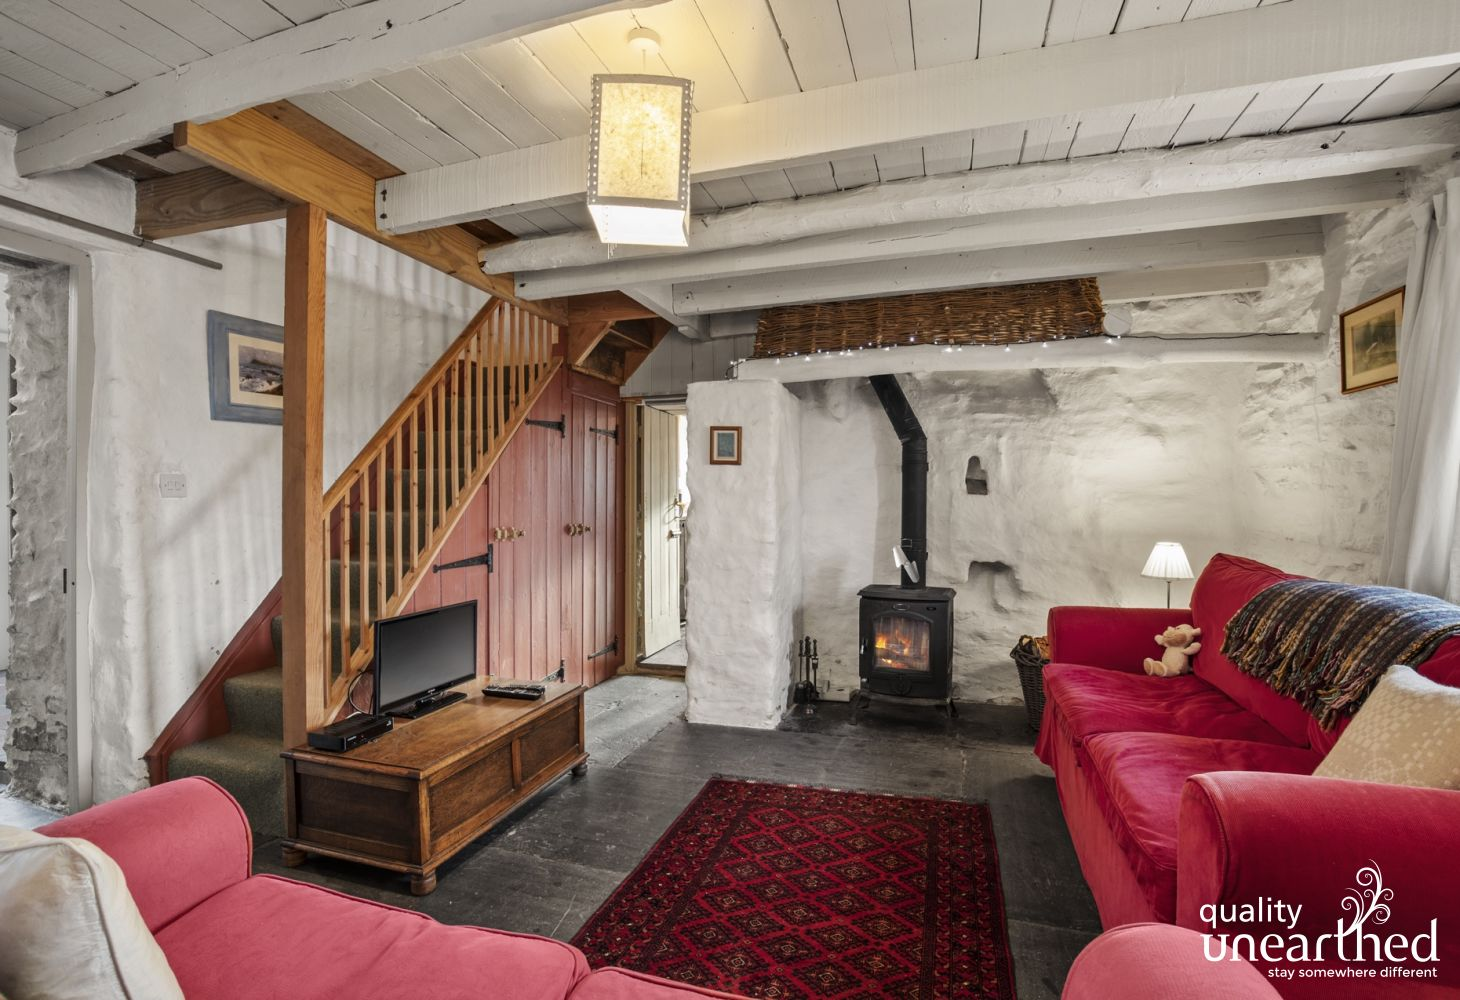 Cottage holiday Llandysul - cosy sitting room in the heart of the cottage two sofas, wood burner and TV